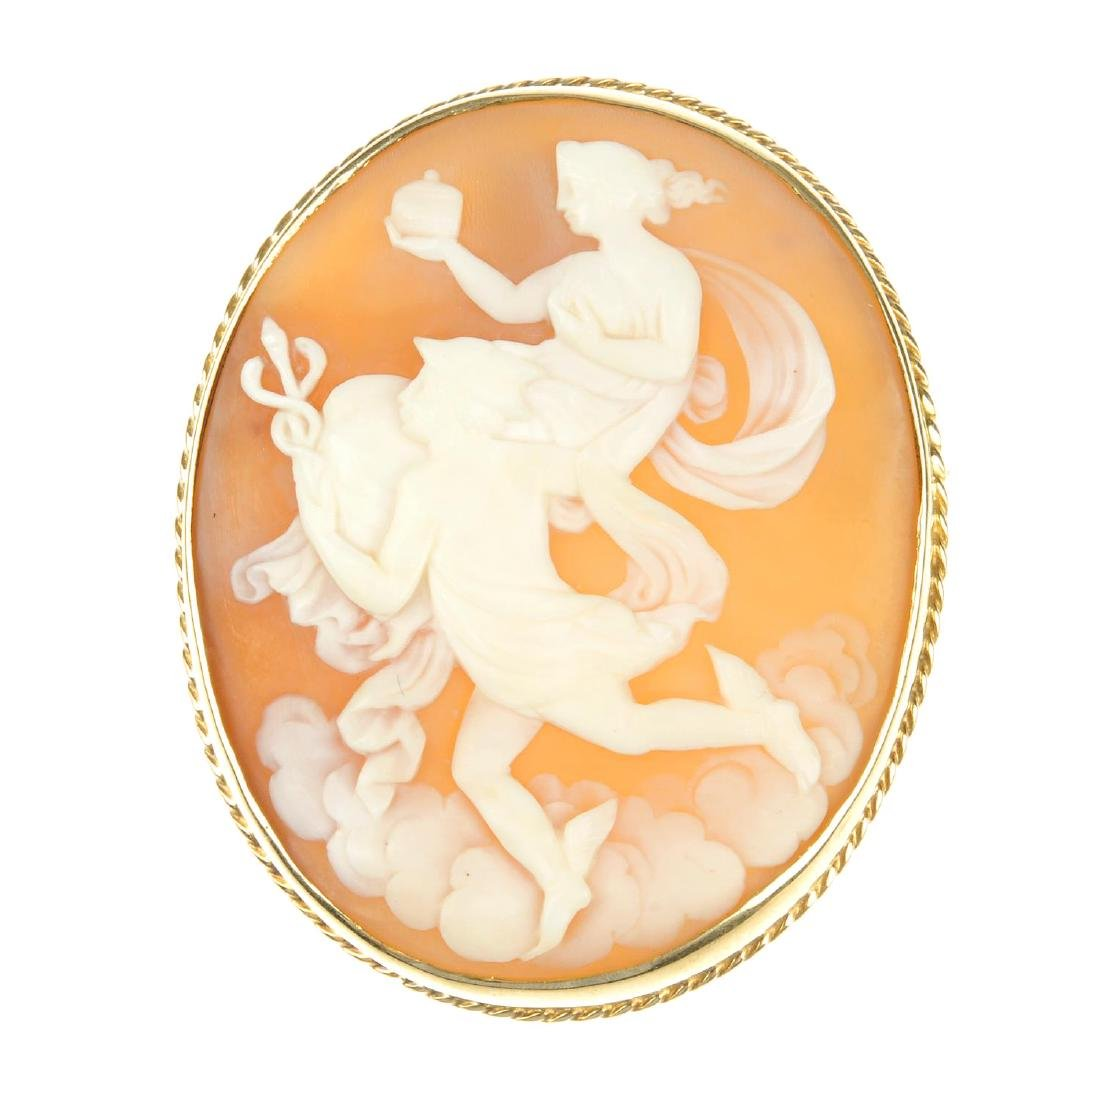 A cameo brooch. Of oval outline, the carved shell panel